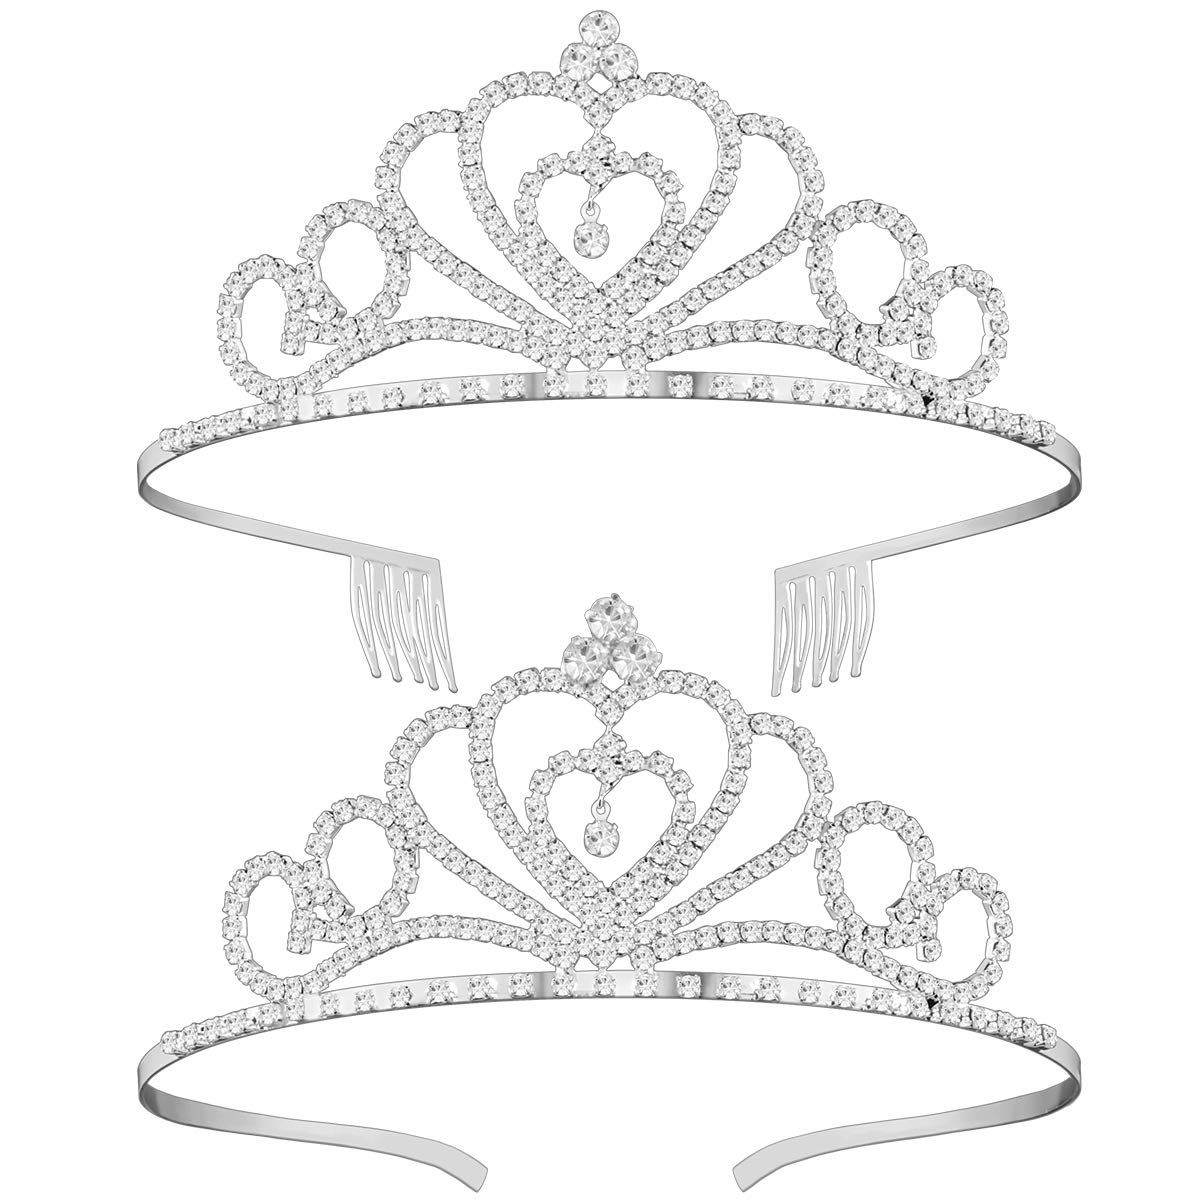 Rhinestone Crystal Tiara Crown, 2 Pack Wedding Bridal Prom Birthday Pageant Princess Tiara Headband